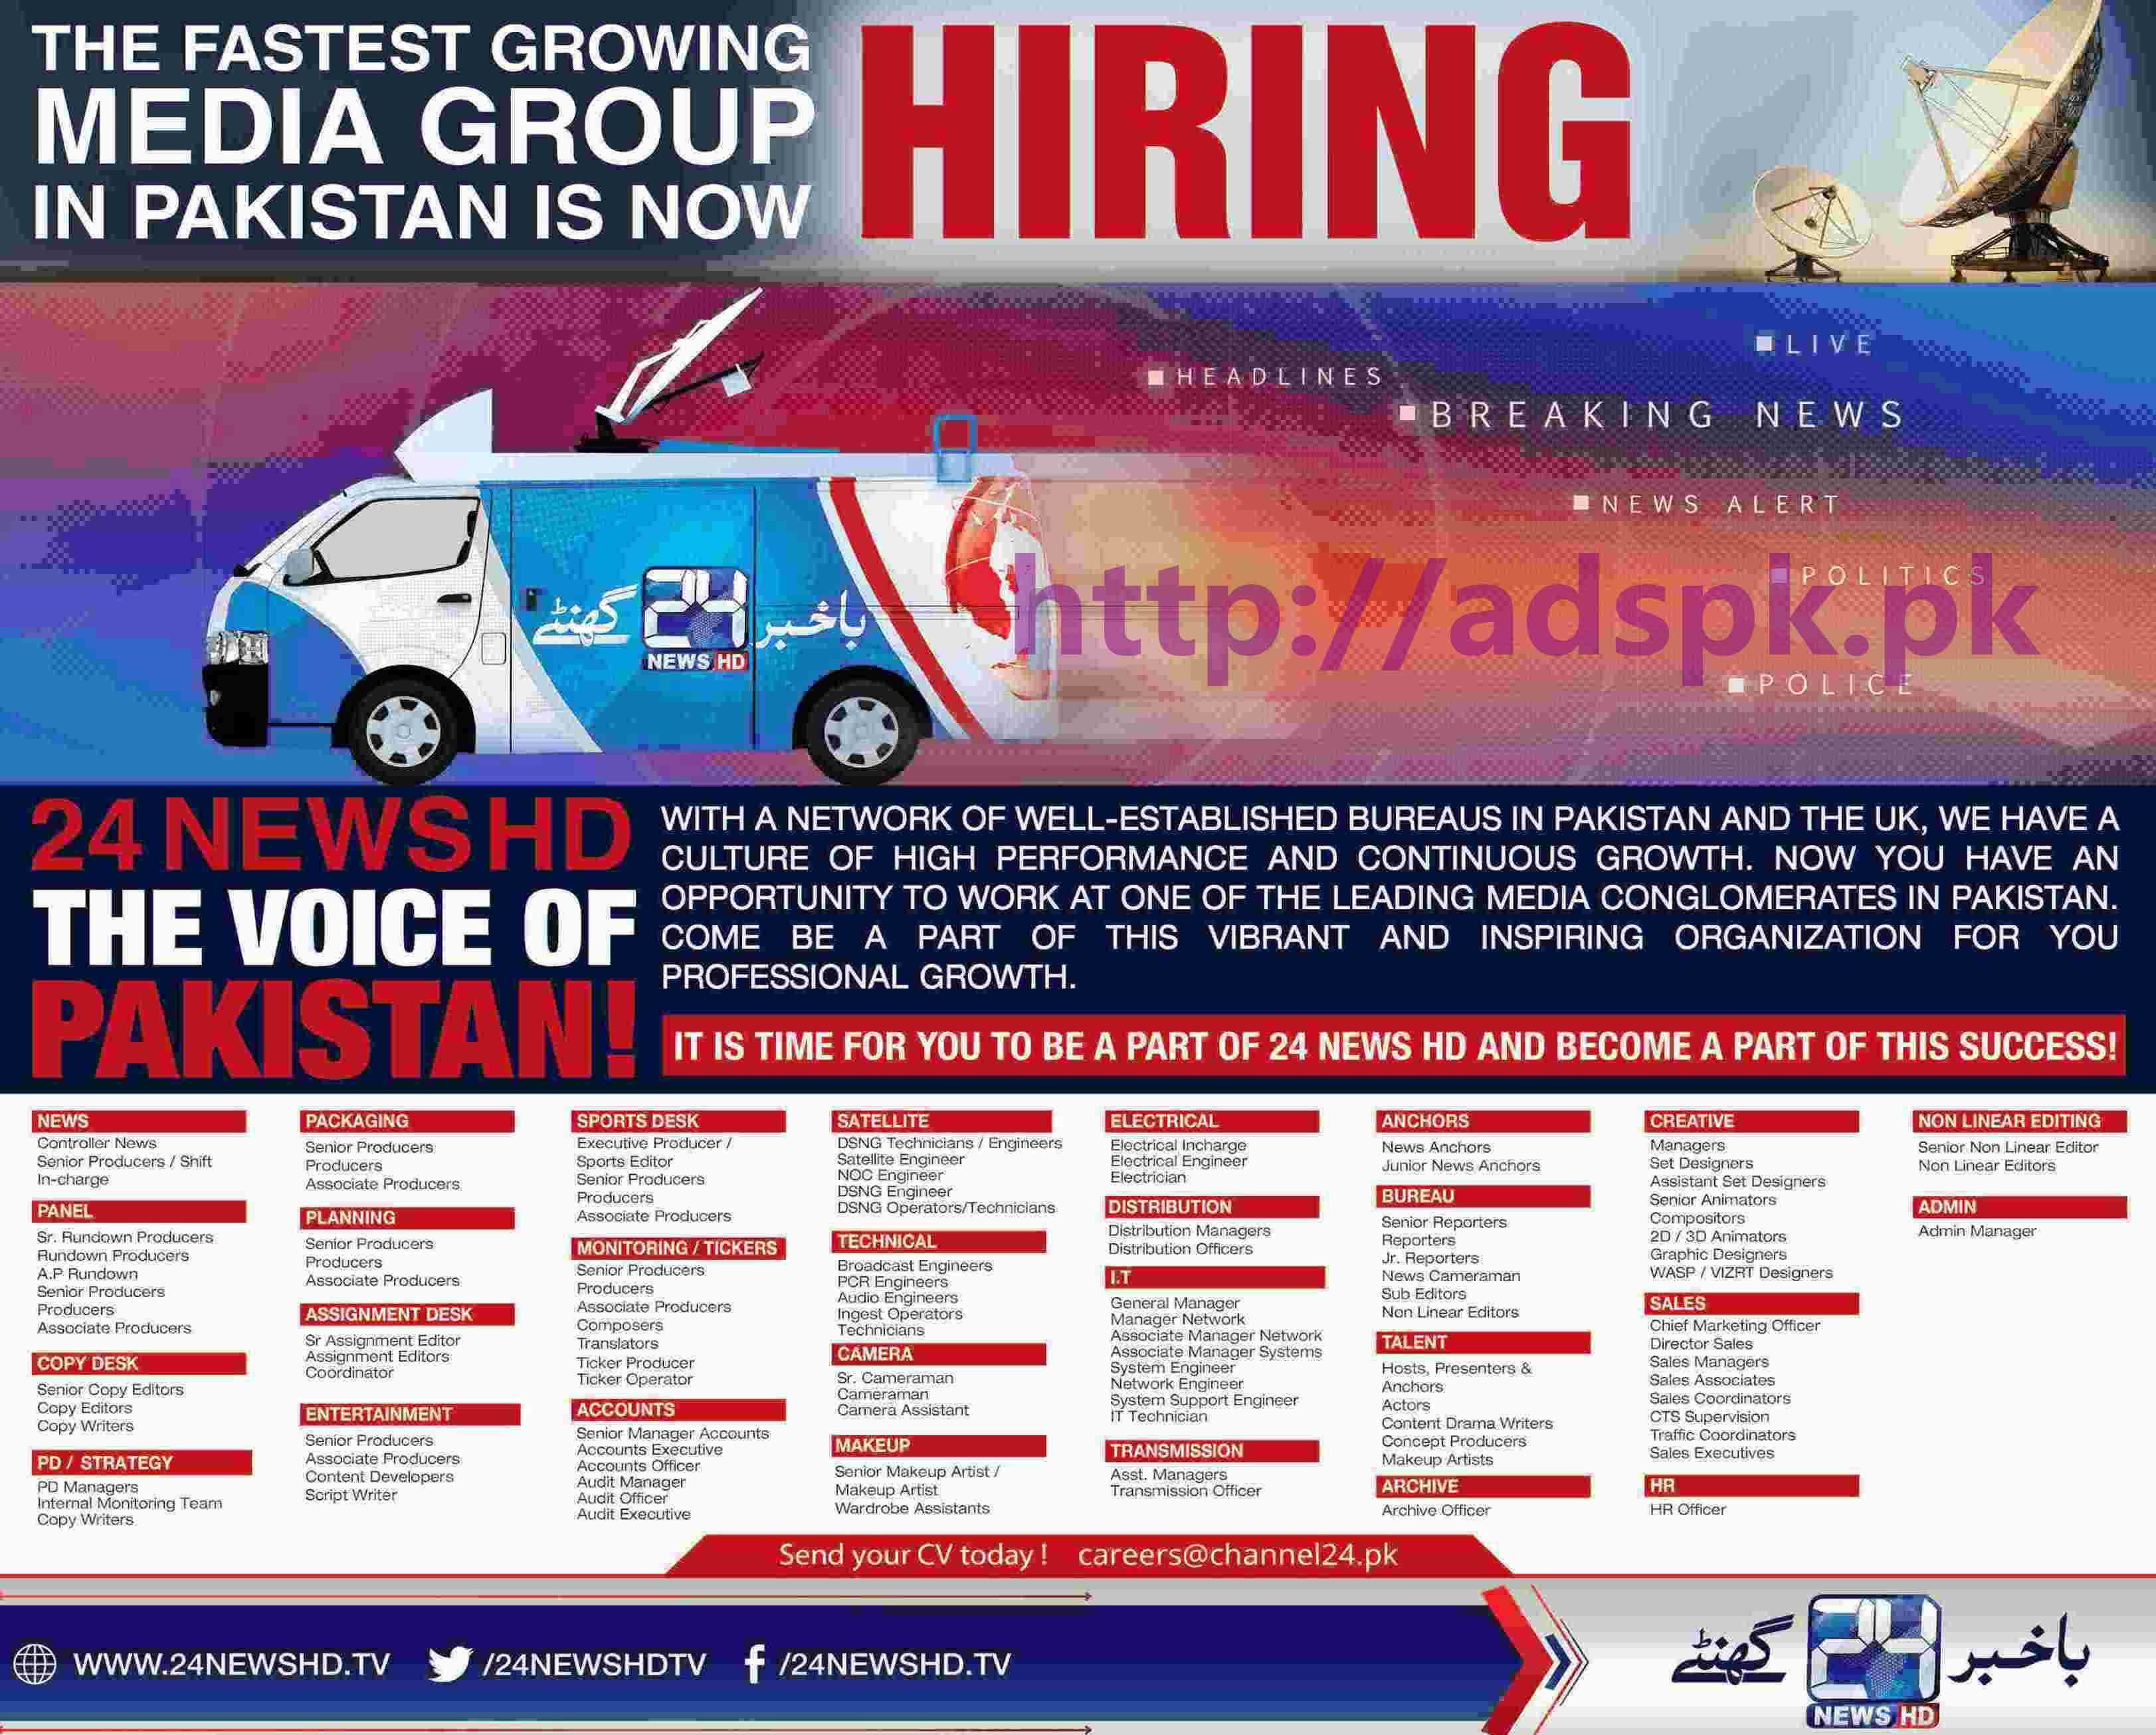 new careers excellent jobs news hd tv channel jobs fastest new careers excellent jobs 24 news hd tv channel jobs 2017 fastest media group in